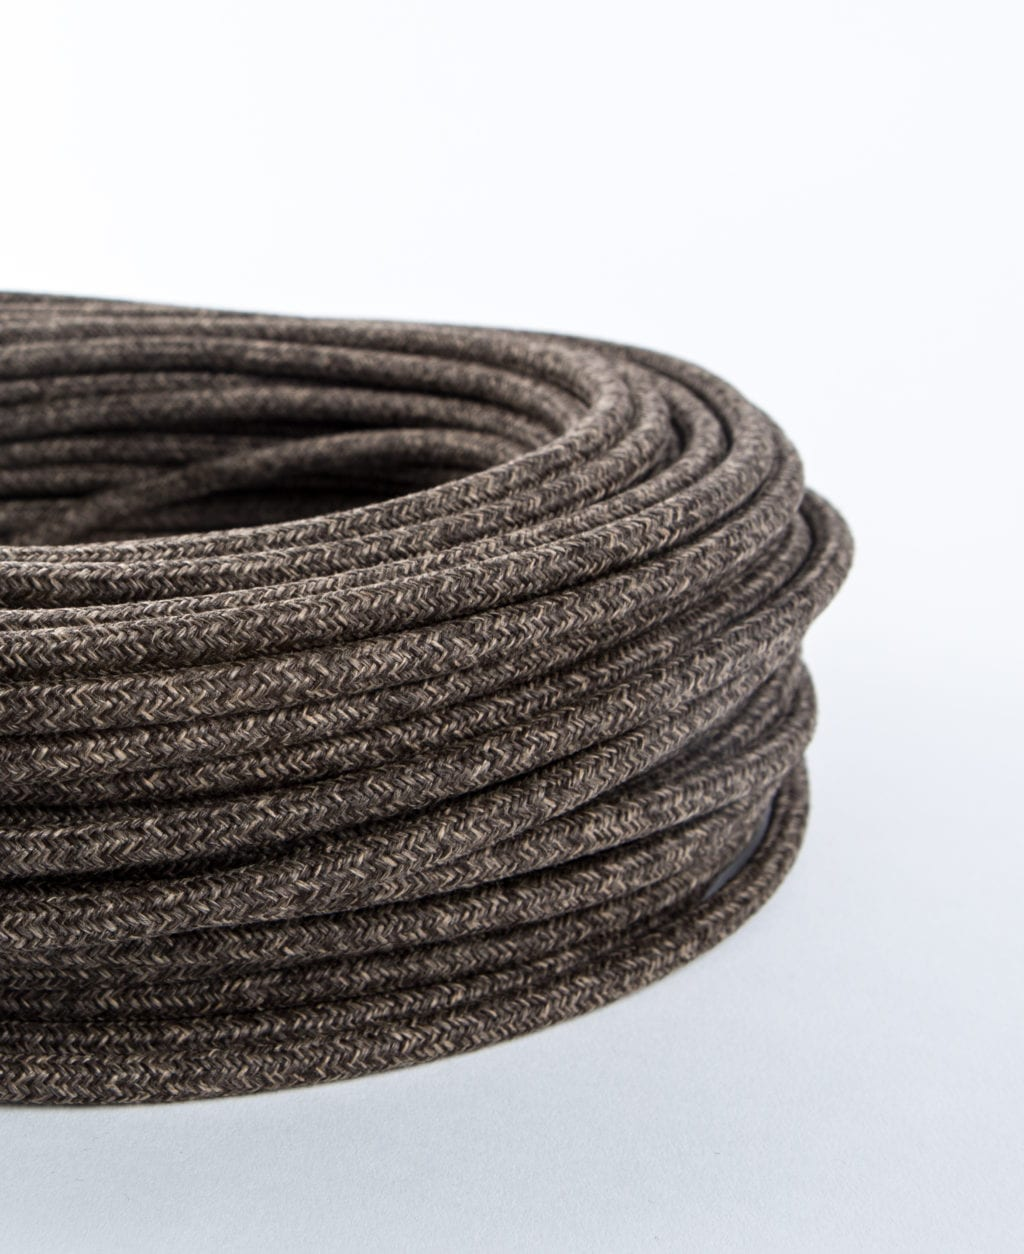 closeup of brown jumper fabric cable coil against white background